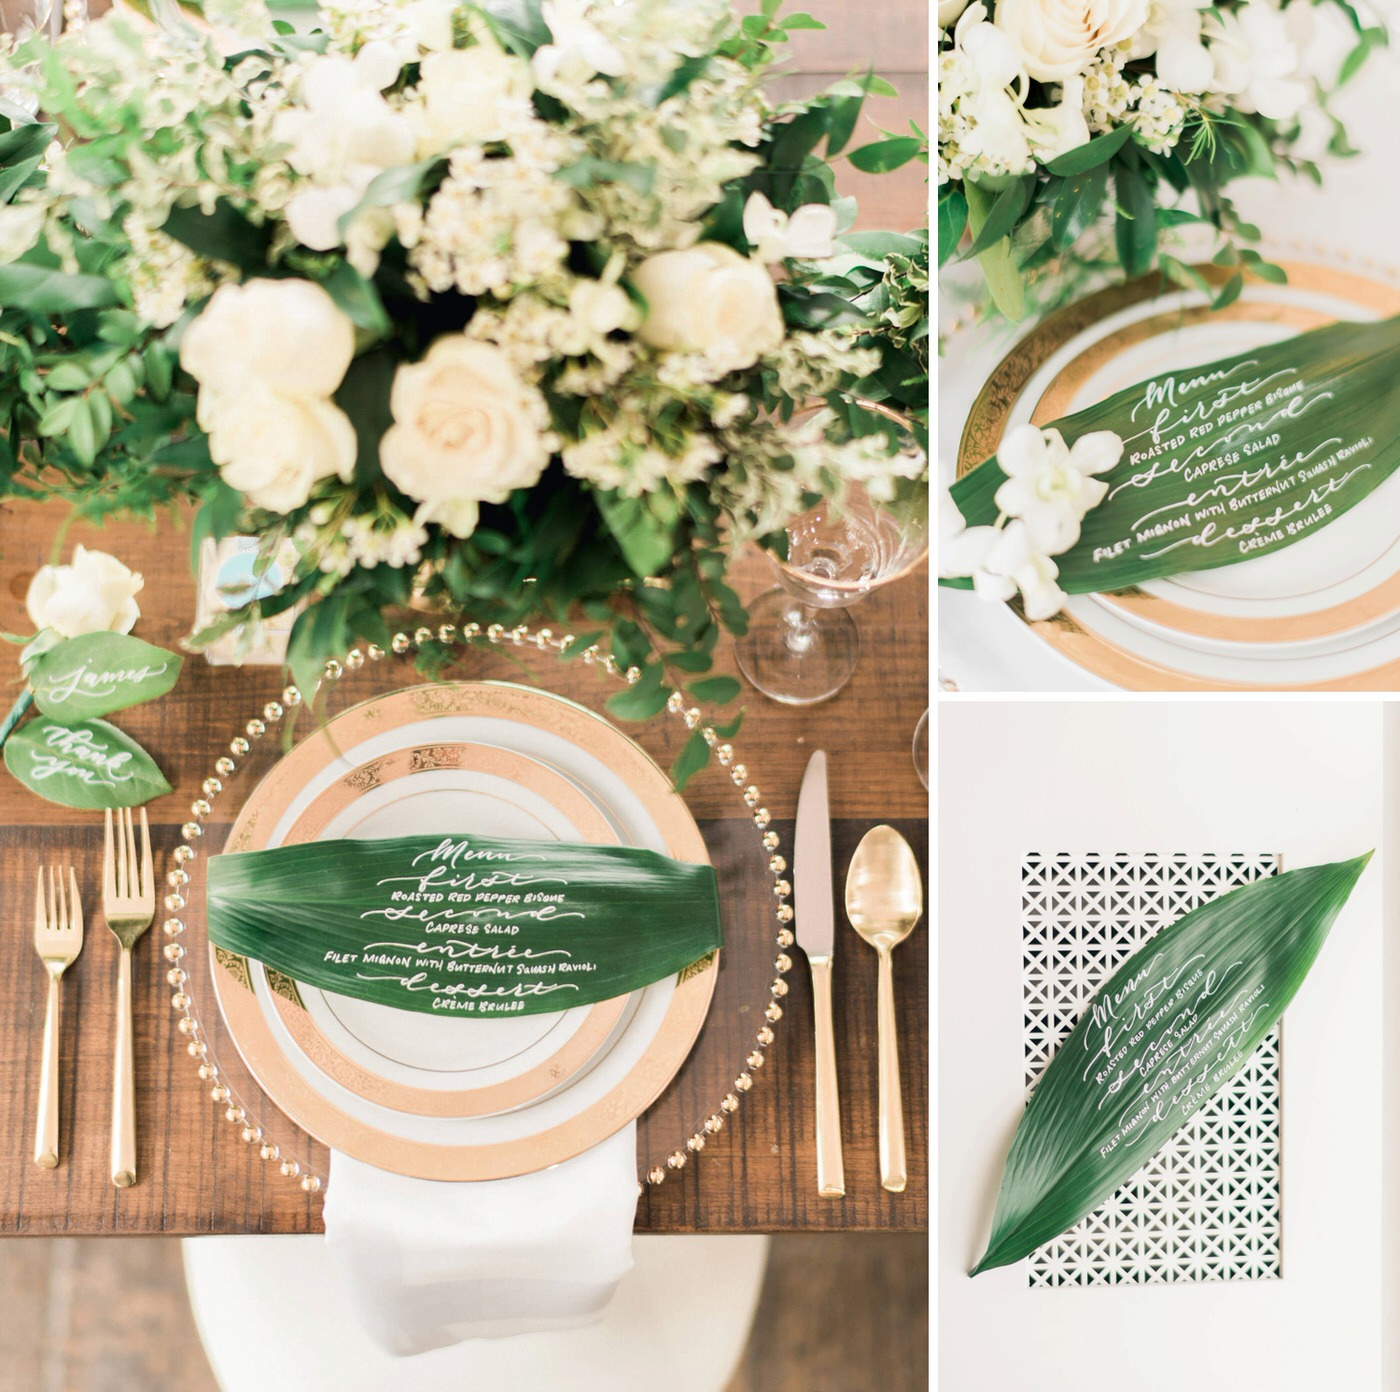 banana leaf menus at wedding table at Estates of Sunnybrook